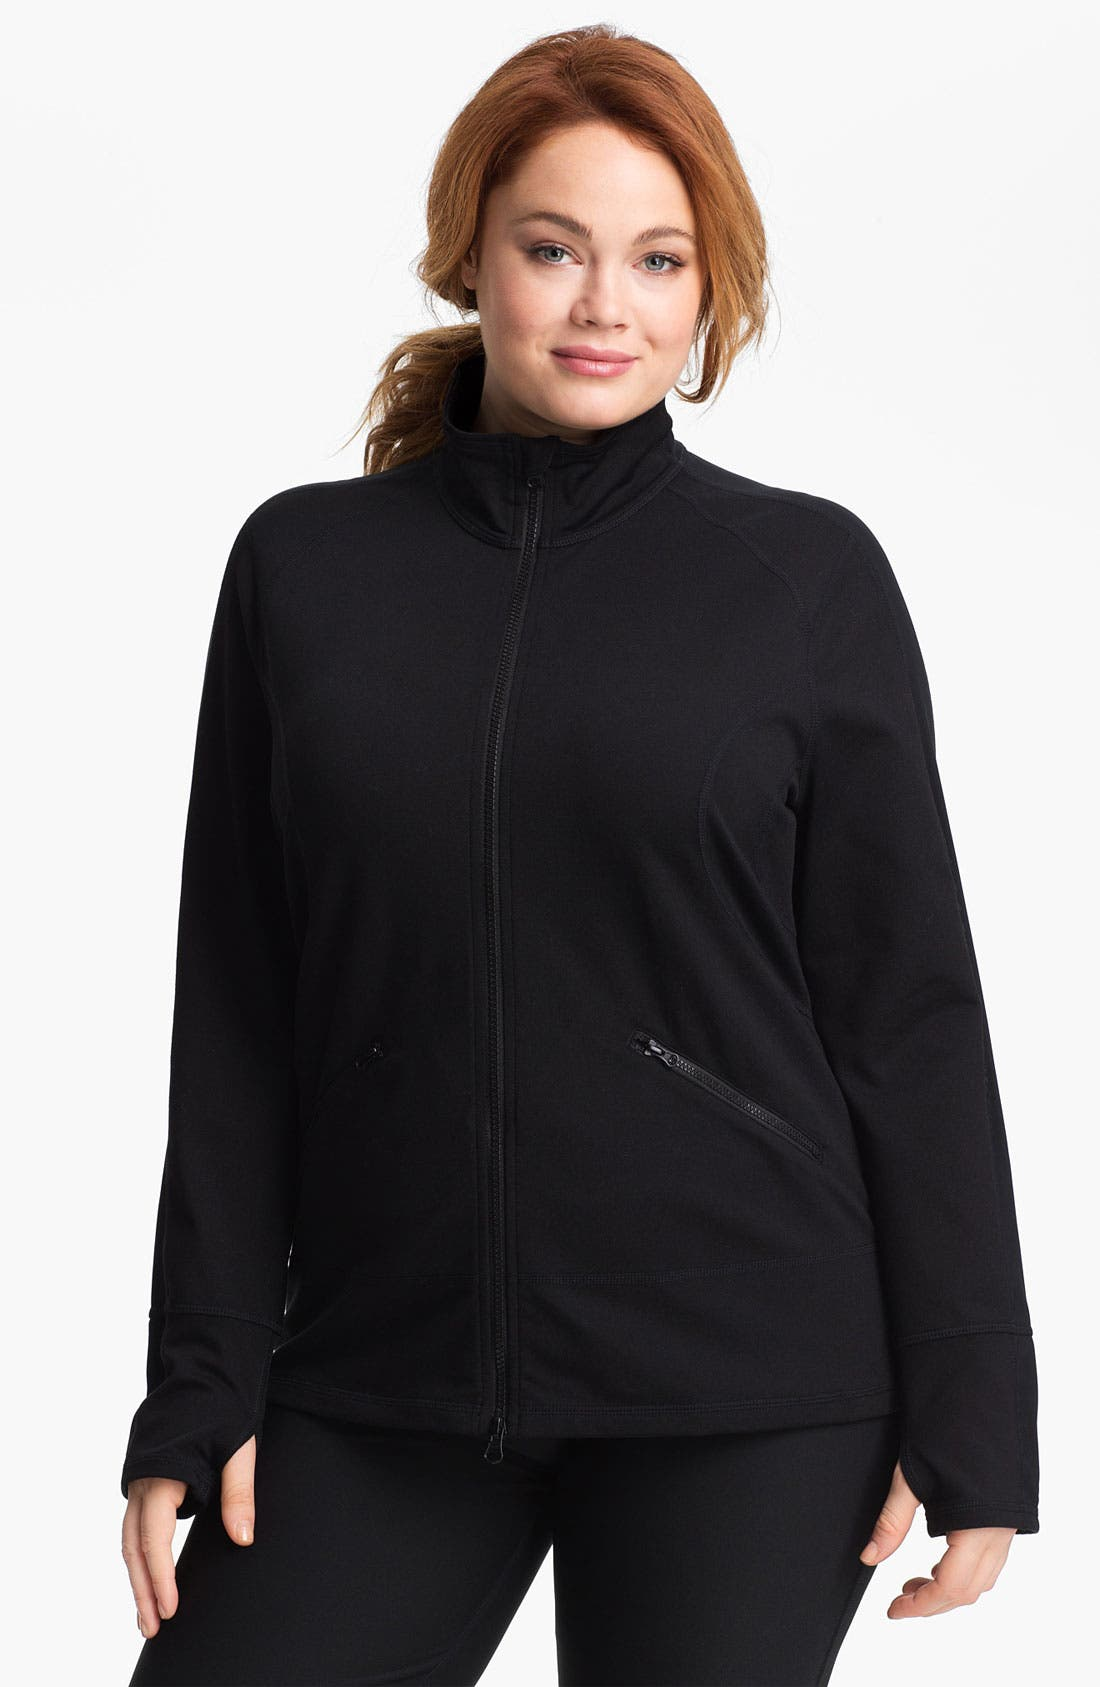 Alternate Image 1 Selected - Zella 'Streamline' Jacket (Plus Size)